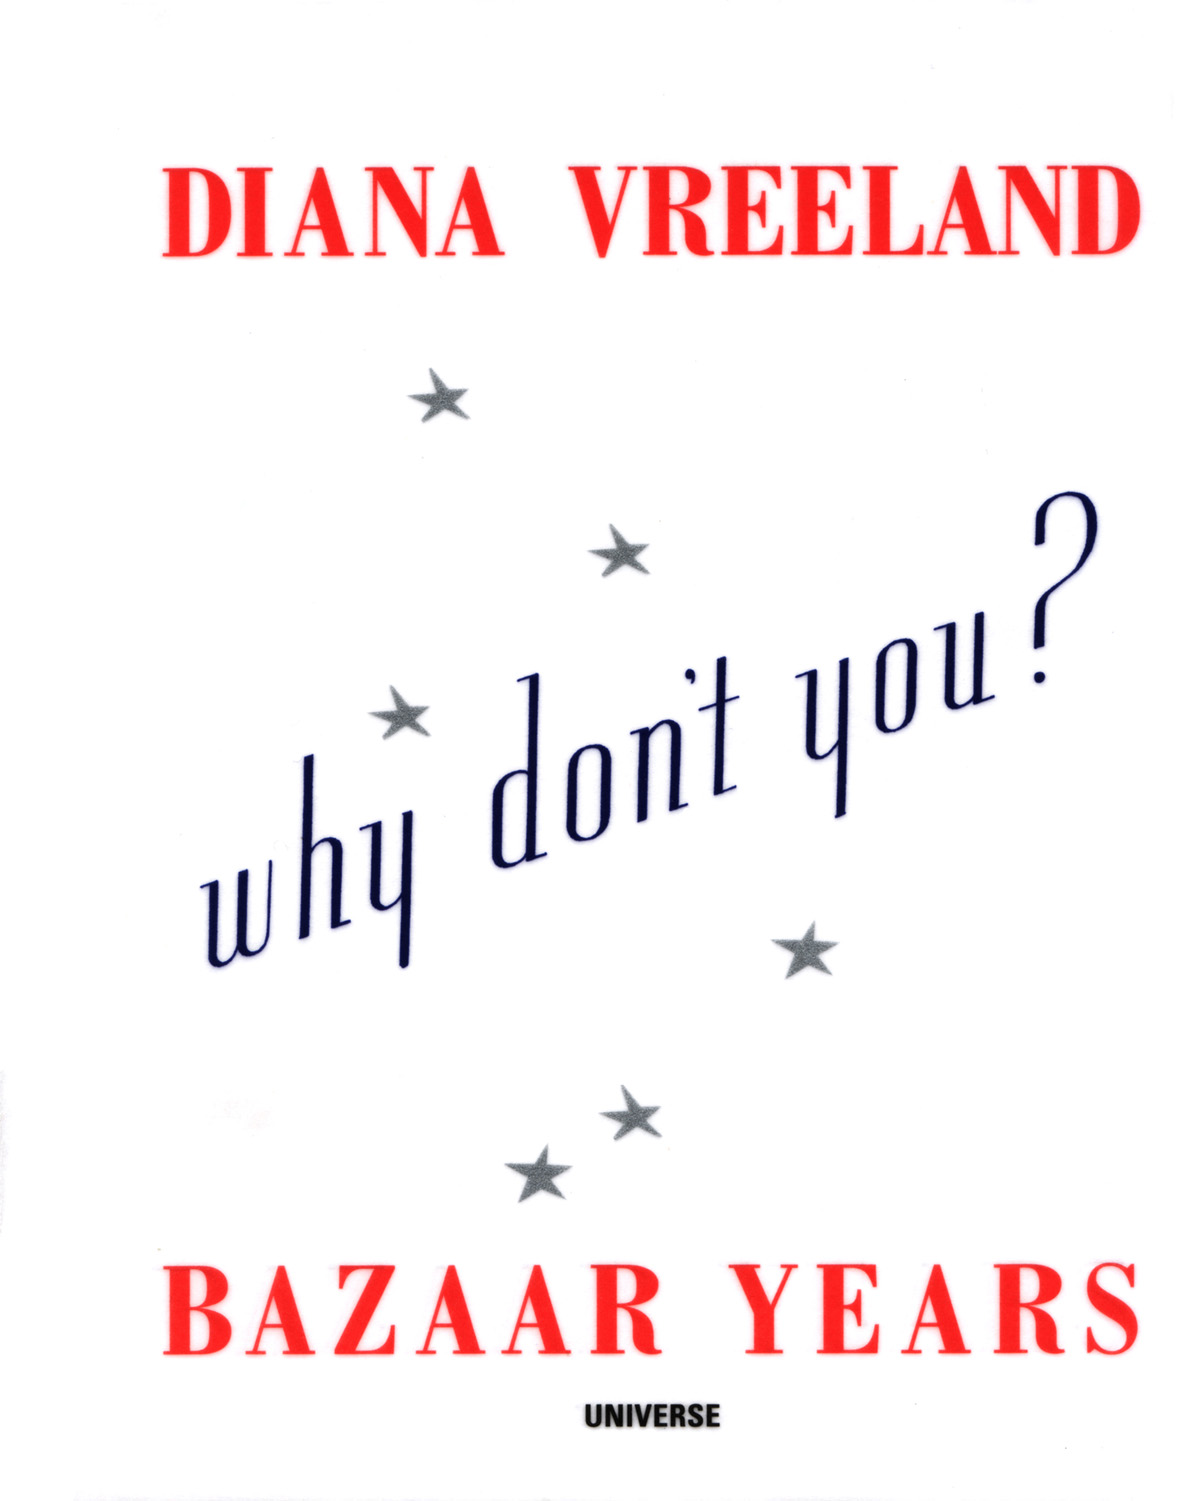 Why Don't You…? (November 2001) - A celebration of Diana Vreeland – one of the world's greatest fashion iconoclasts – and her spectacular advice for stylish living, from interior design to accessorising. Published by Universe/Rizzoli, her unique ideas redefined attitudes about day-to day life and style and for anyone in need of a